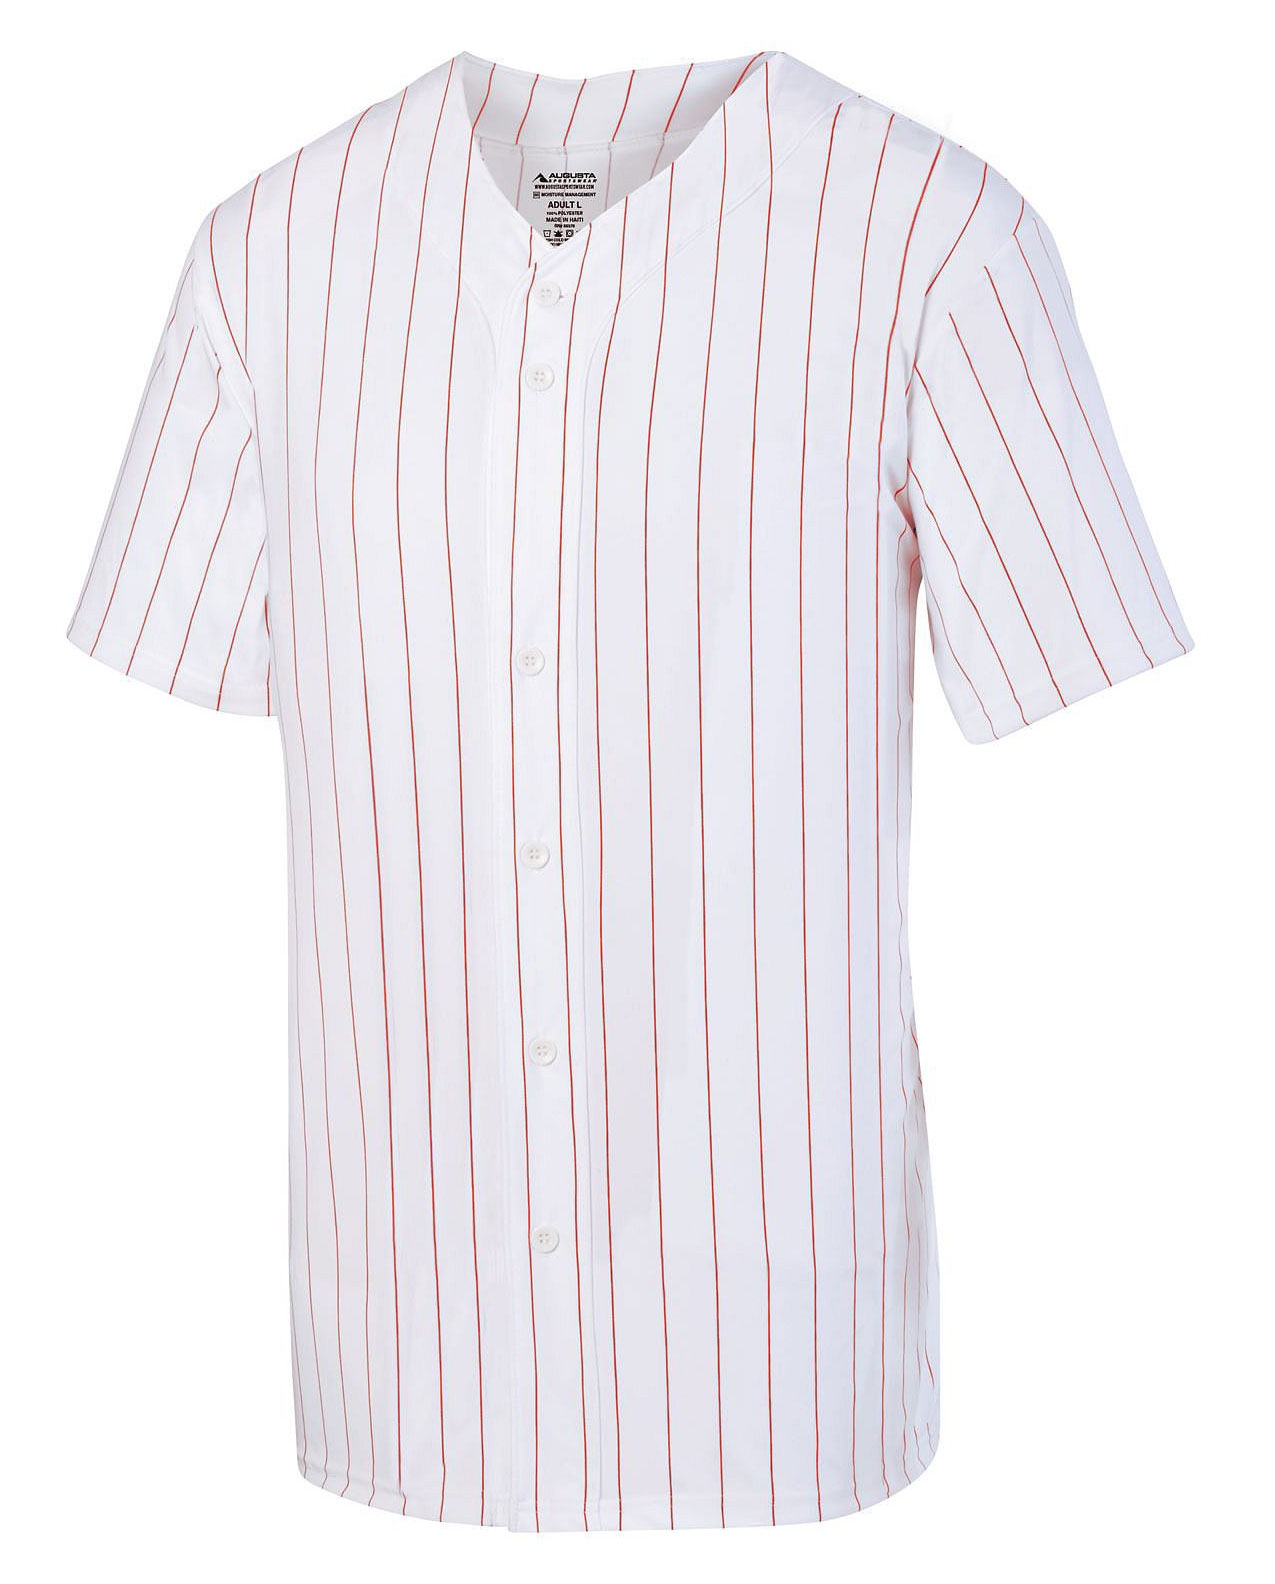 Augusta Adult Pinstripe Full Button Baseball Jersey